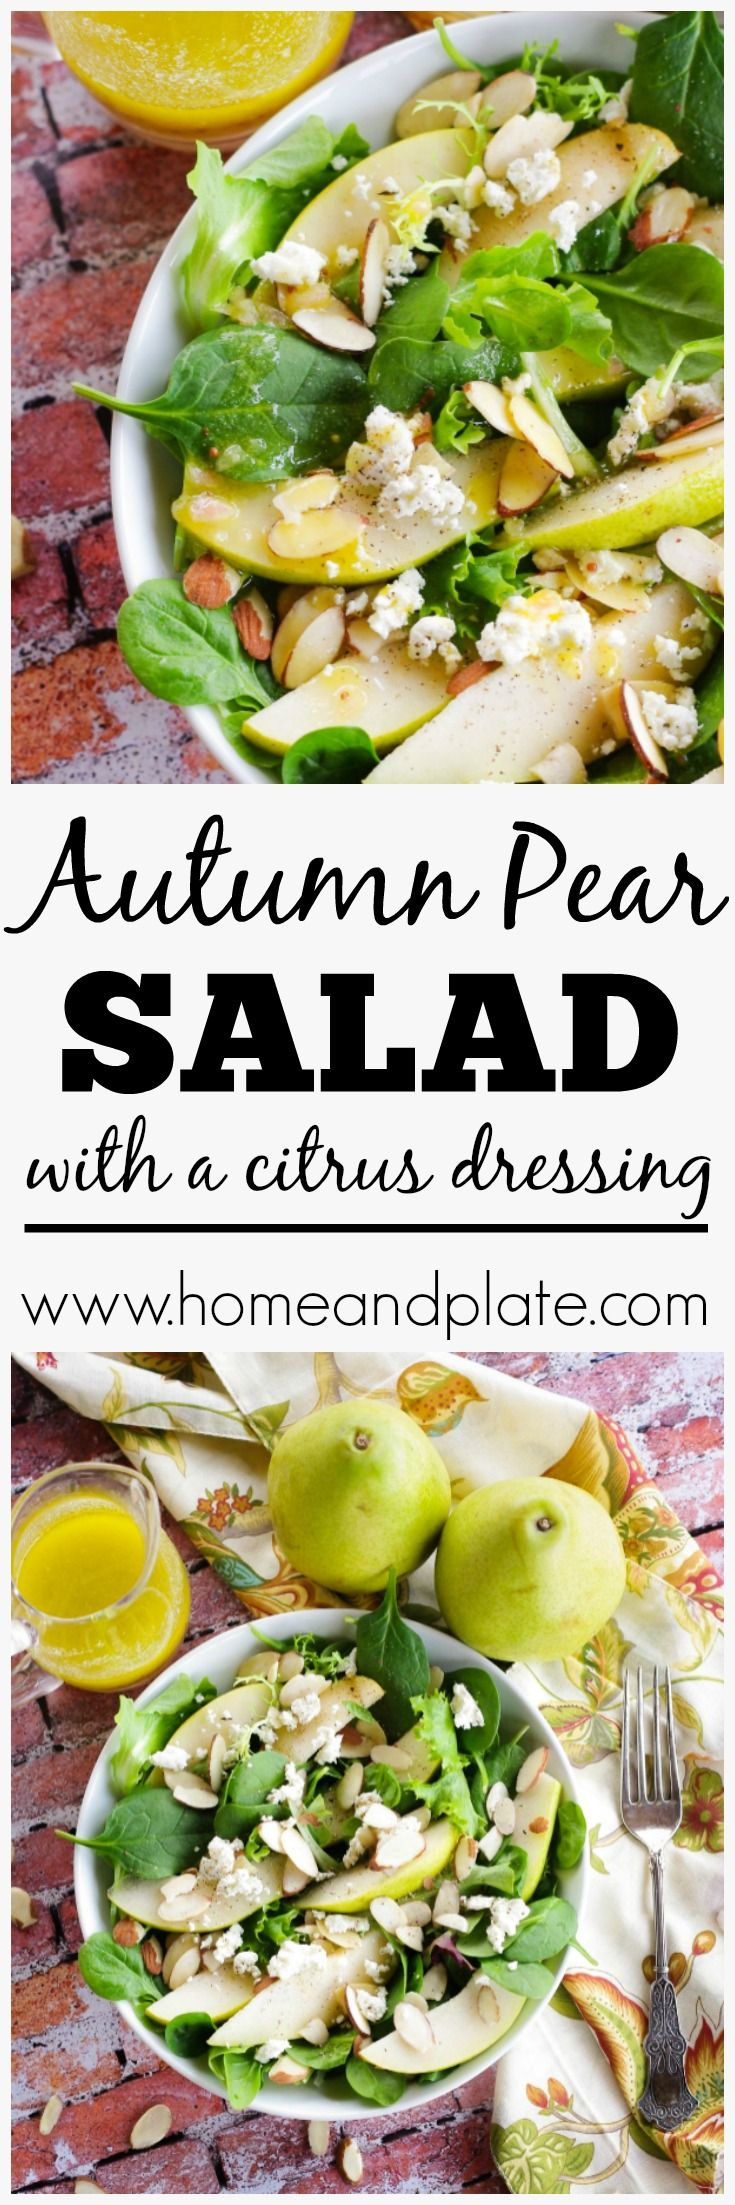 Autumn Pear Salad with Citrus Dressing | www.homea…